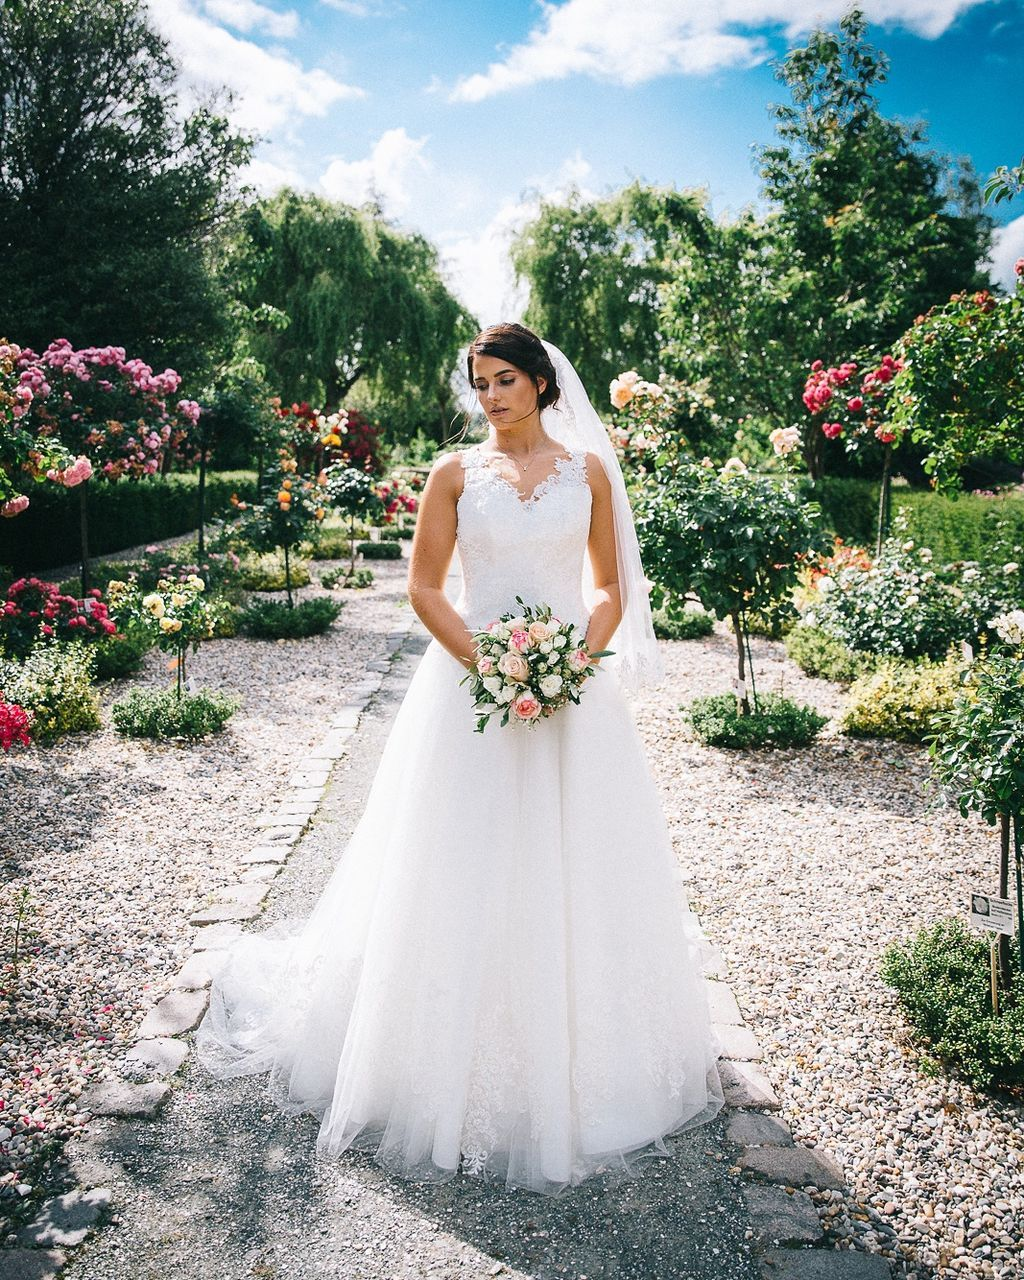 wedding, bride, wedding dress, young adult, young women, front view, real people, one person, bouquet, celebration, standing, flower, life events, women, outdoors, full length, day, lifestyles, beautiful woman, wife, nature, happiness, tree, sky, groom, adult, people